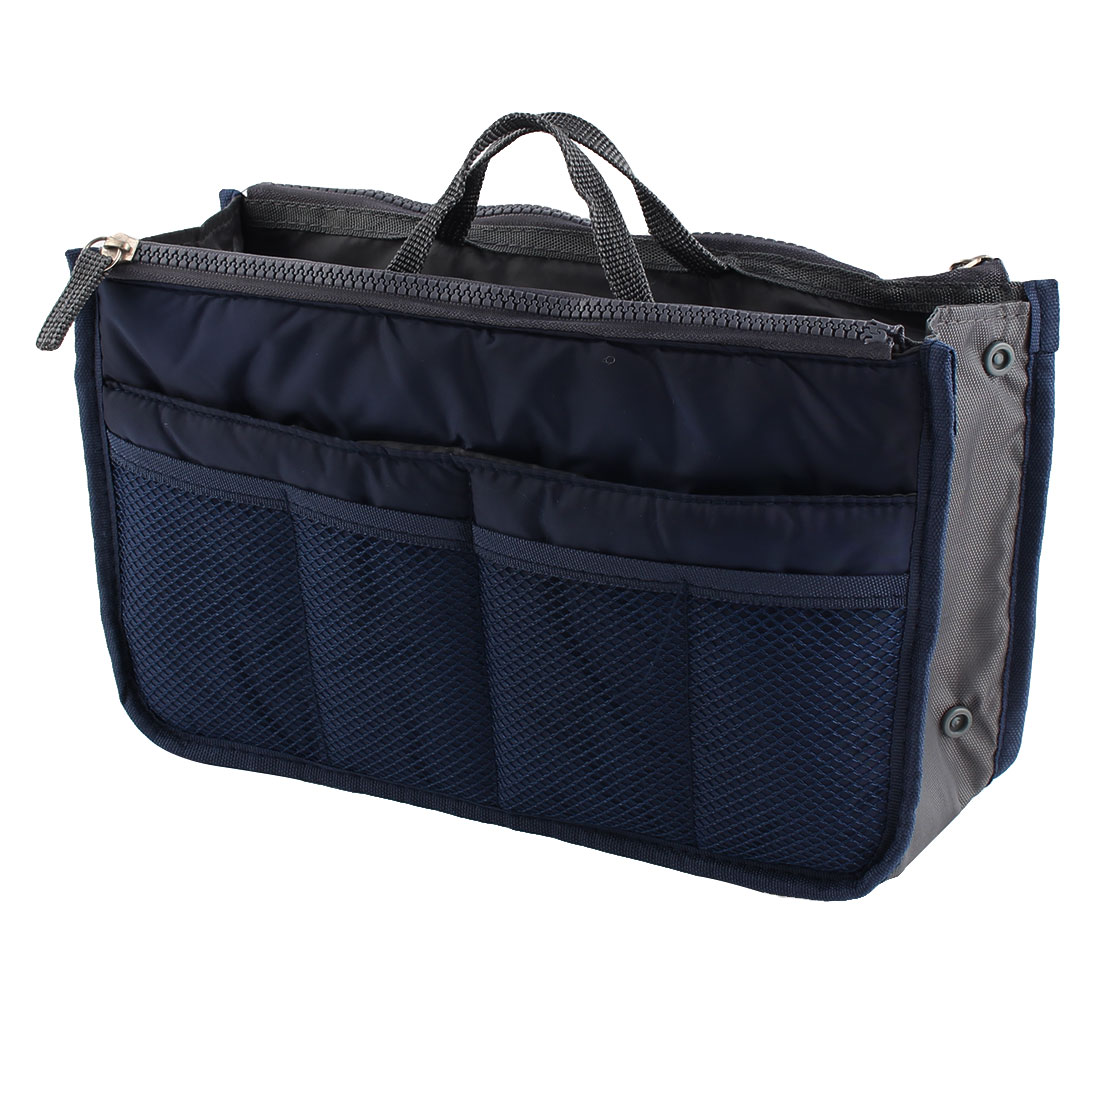 Portable Multi-functional Storage Bag Handbag Organizer Holder Container Navy Blue